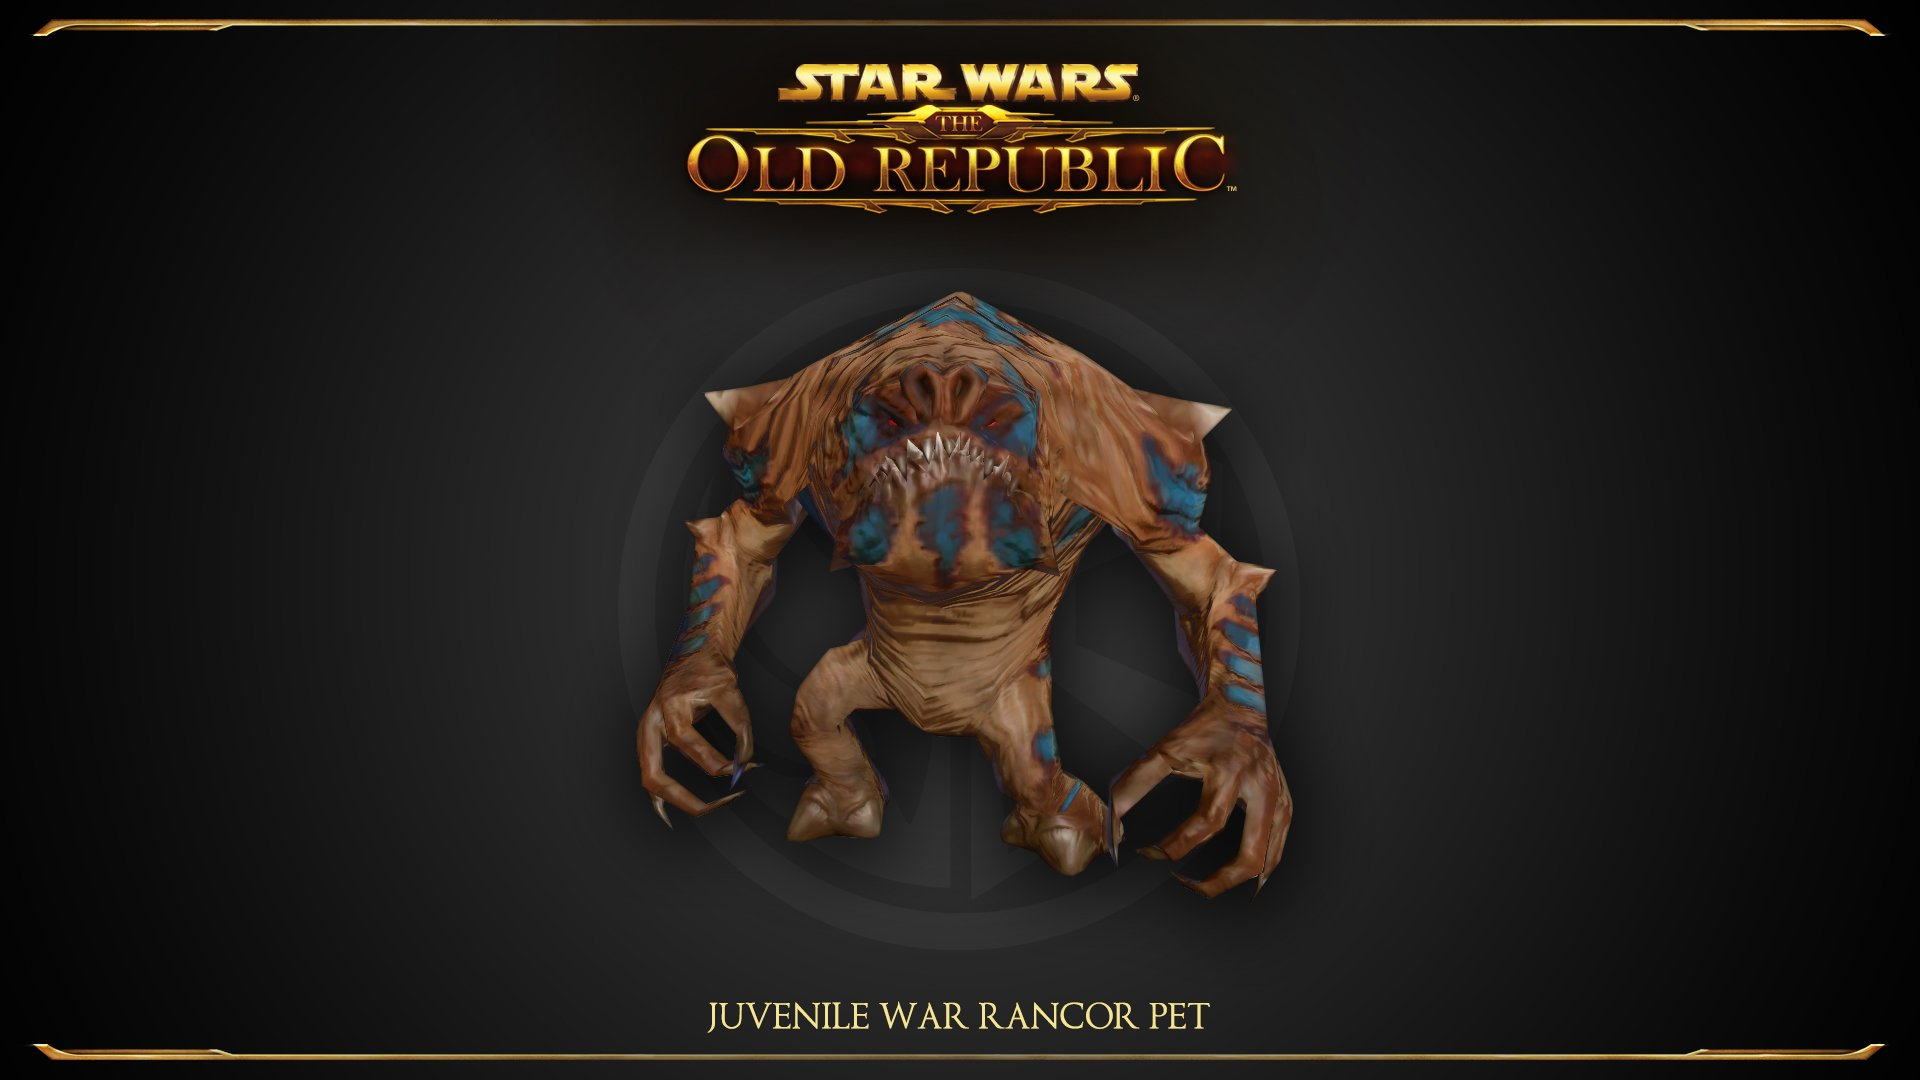 Review Star Wars: The Old